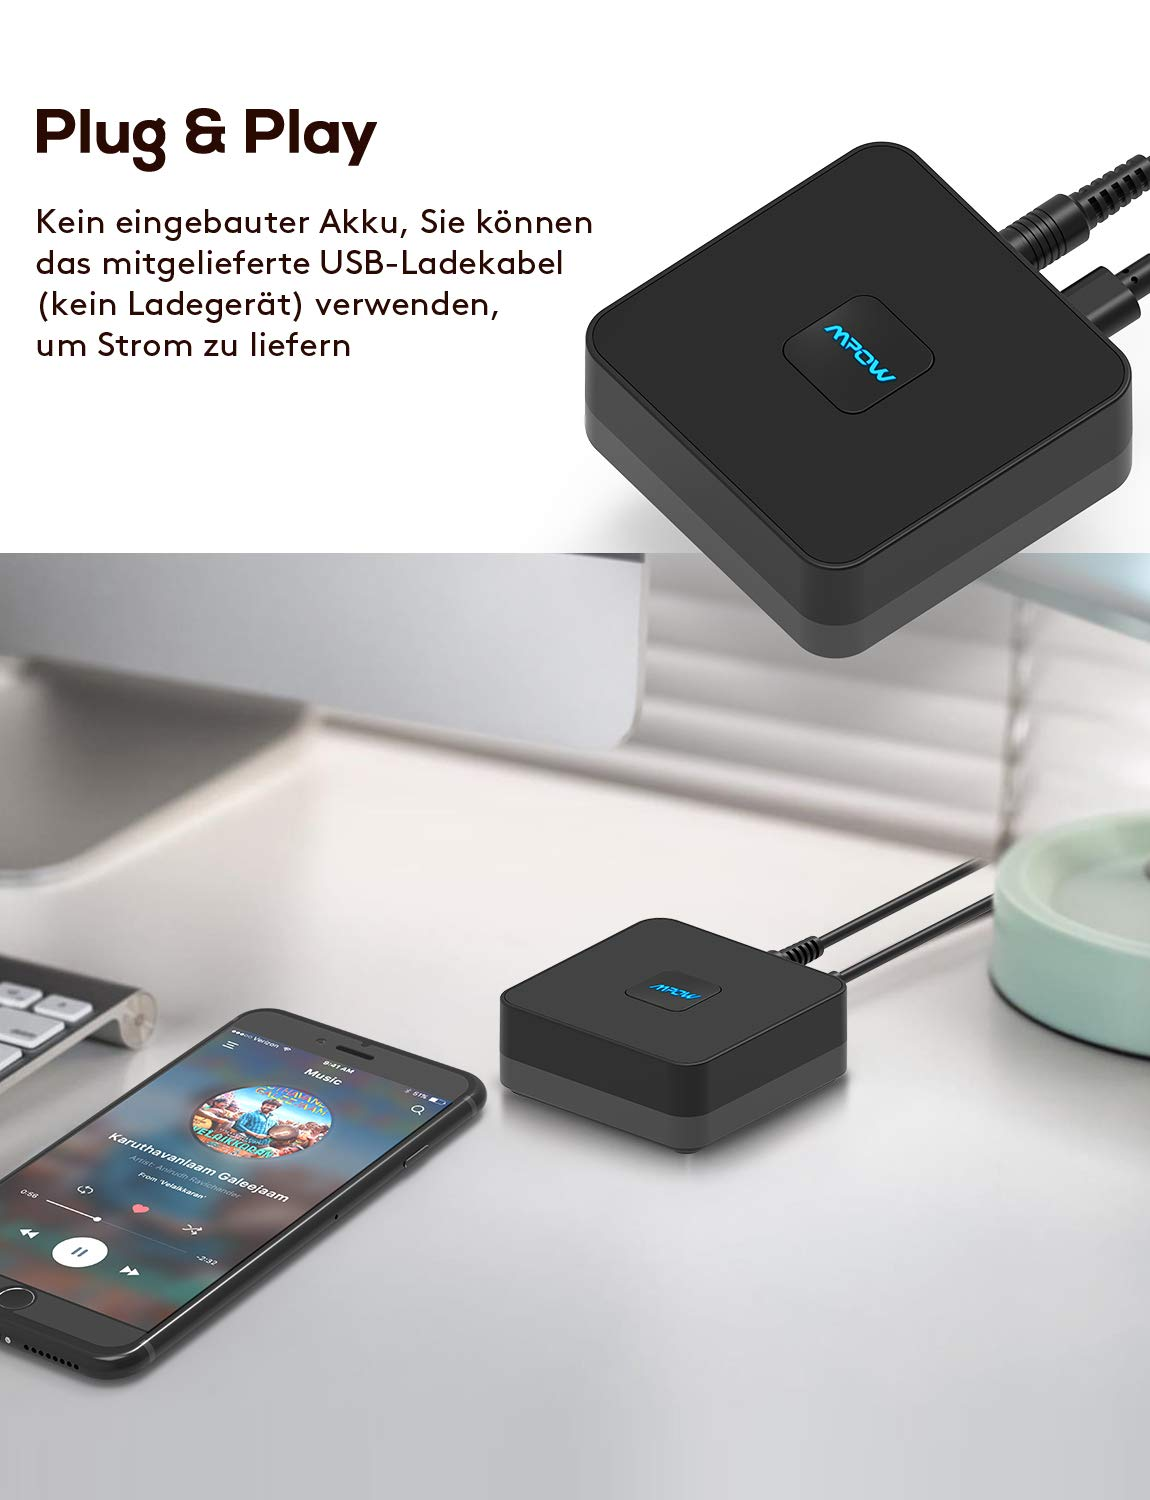 Mpow-Bluetooth-Empfnger-Wireless-Audio-Music-Adapter-15-Stunden-lange-Akkulaufzeit-35-mm-Stereo-Cinch-Klinkenkabel-fr-die-Heim-Auto-Audio-Stereoanlage-Dual-Device-Connection-Auto-Reconnect